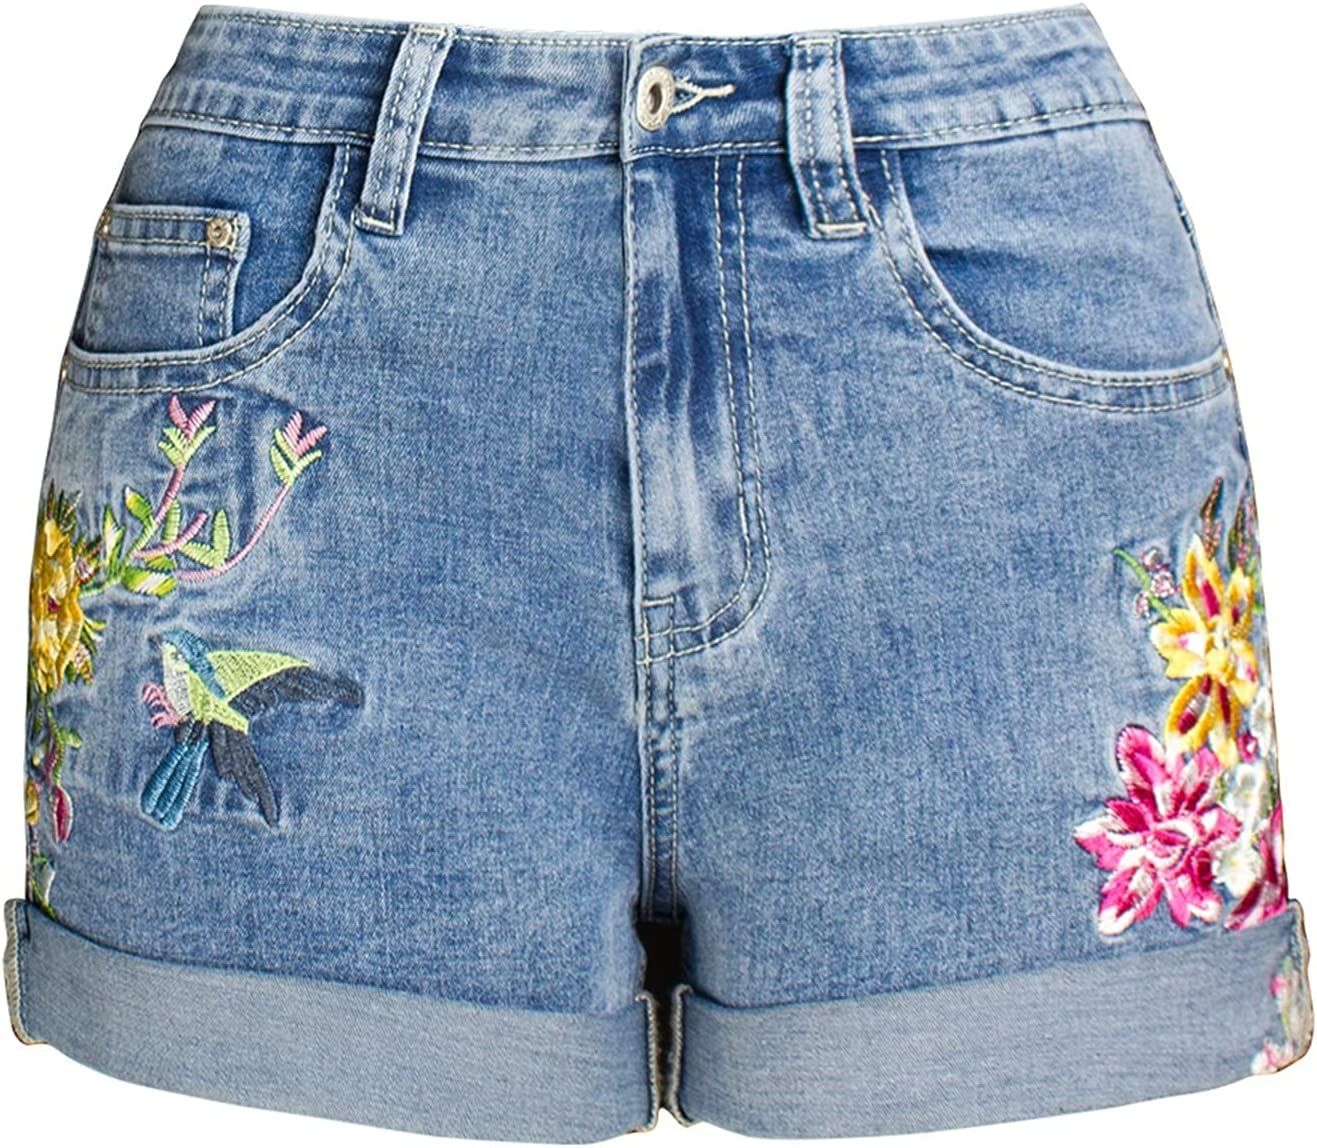 SBCDY Women's Destroyed Ripped Hole Denim Shorts Sexy Short Jeans Summer High Waist Denim Shorts Embroidered Flowers Plus Size Denim Shorts (Color : Blue, Size : 42)